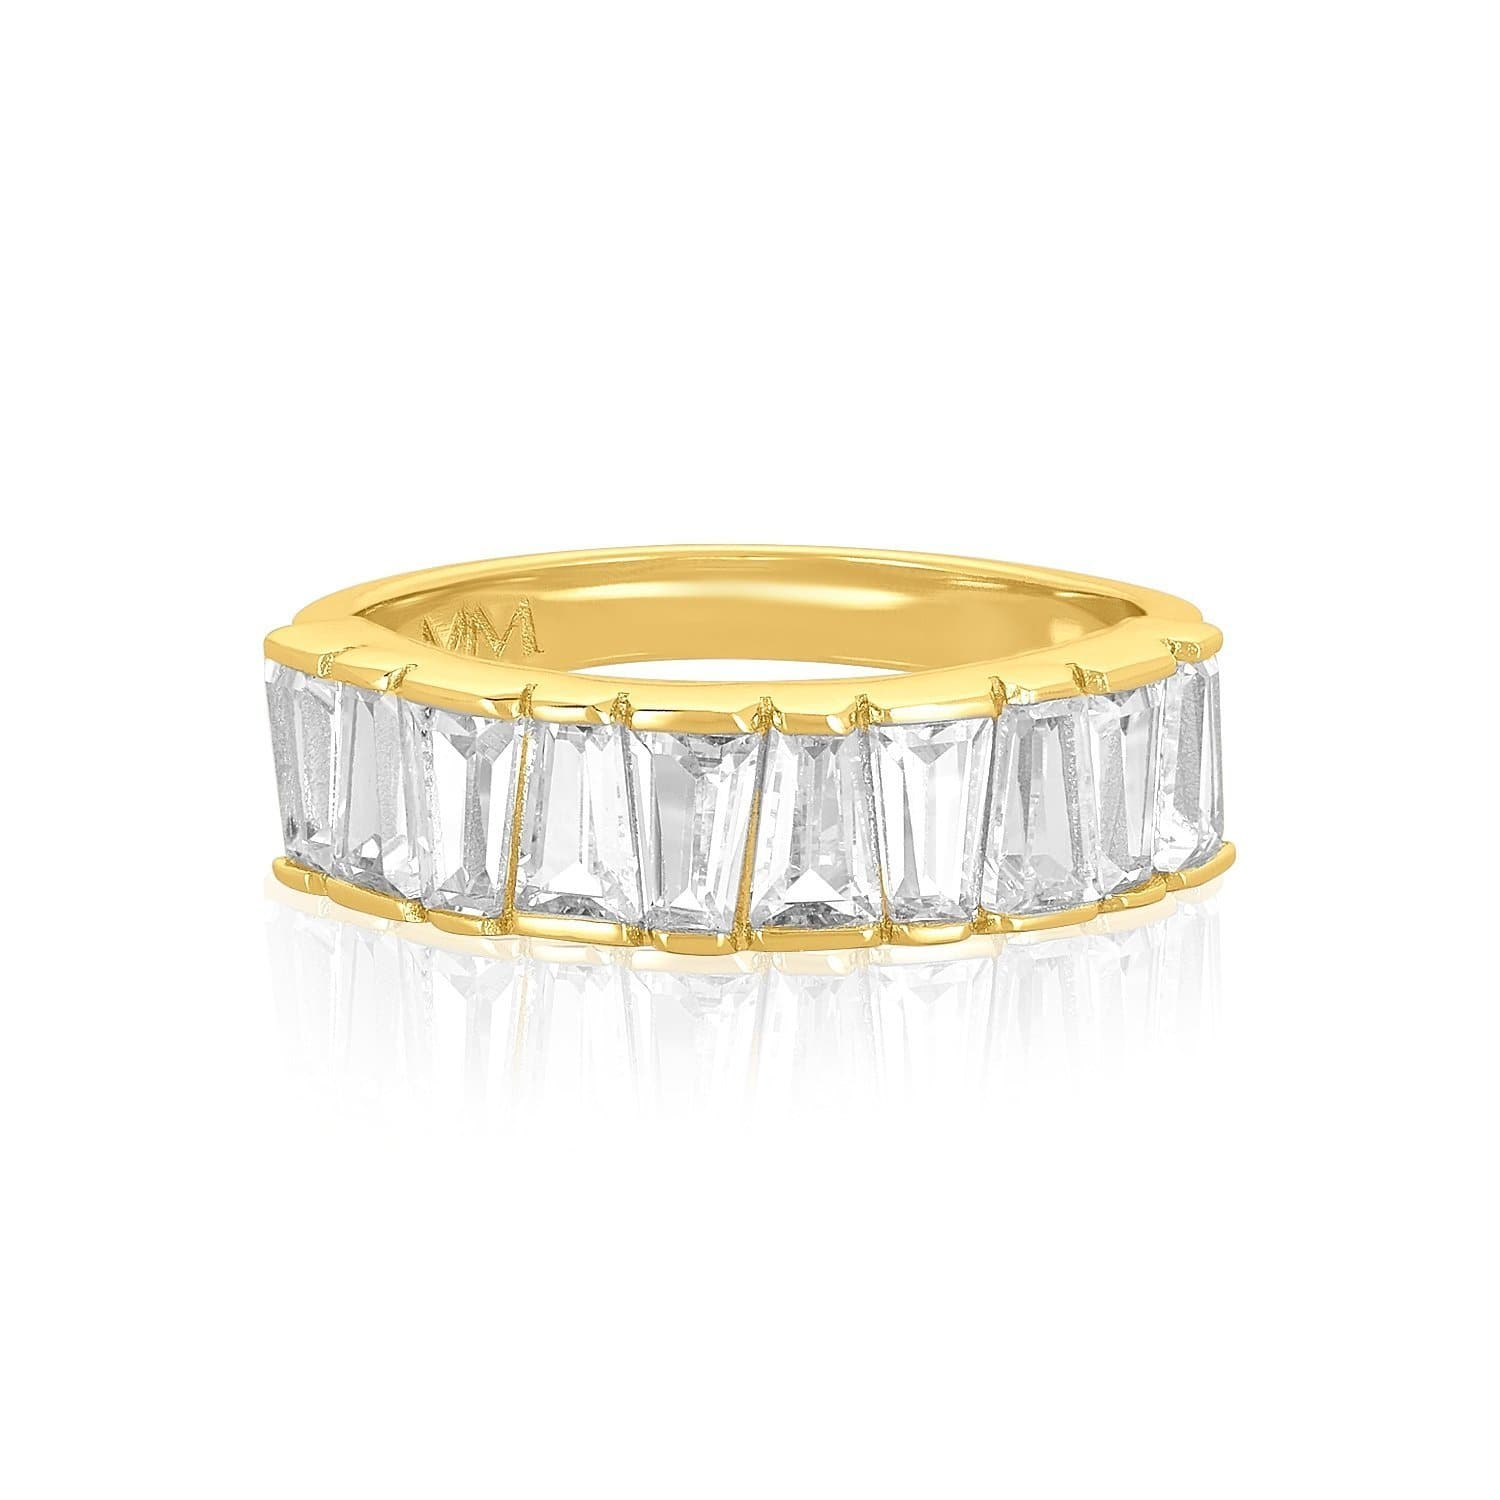 The Queen's Band Ring